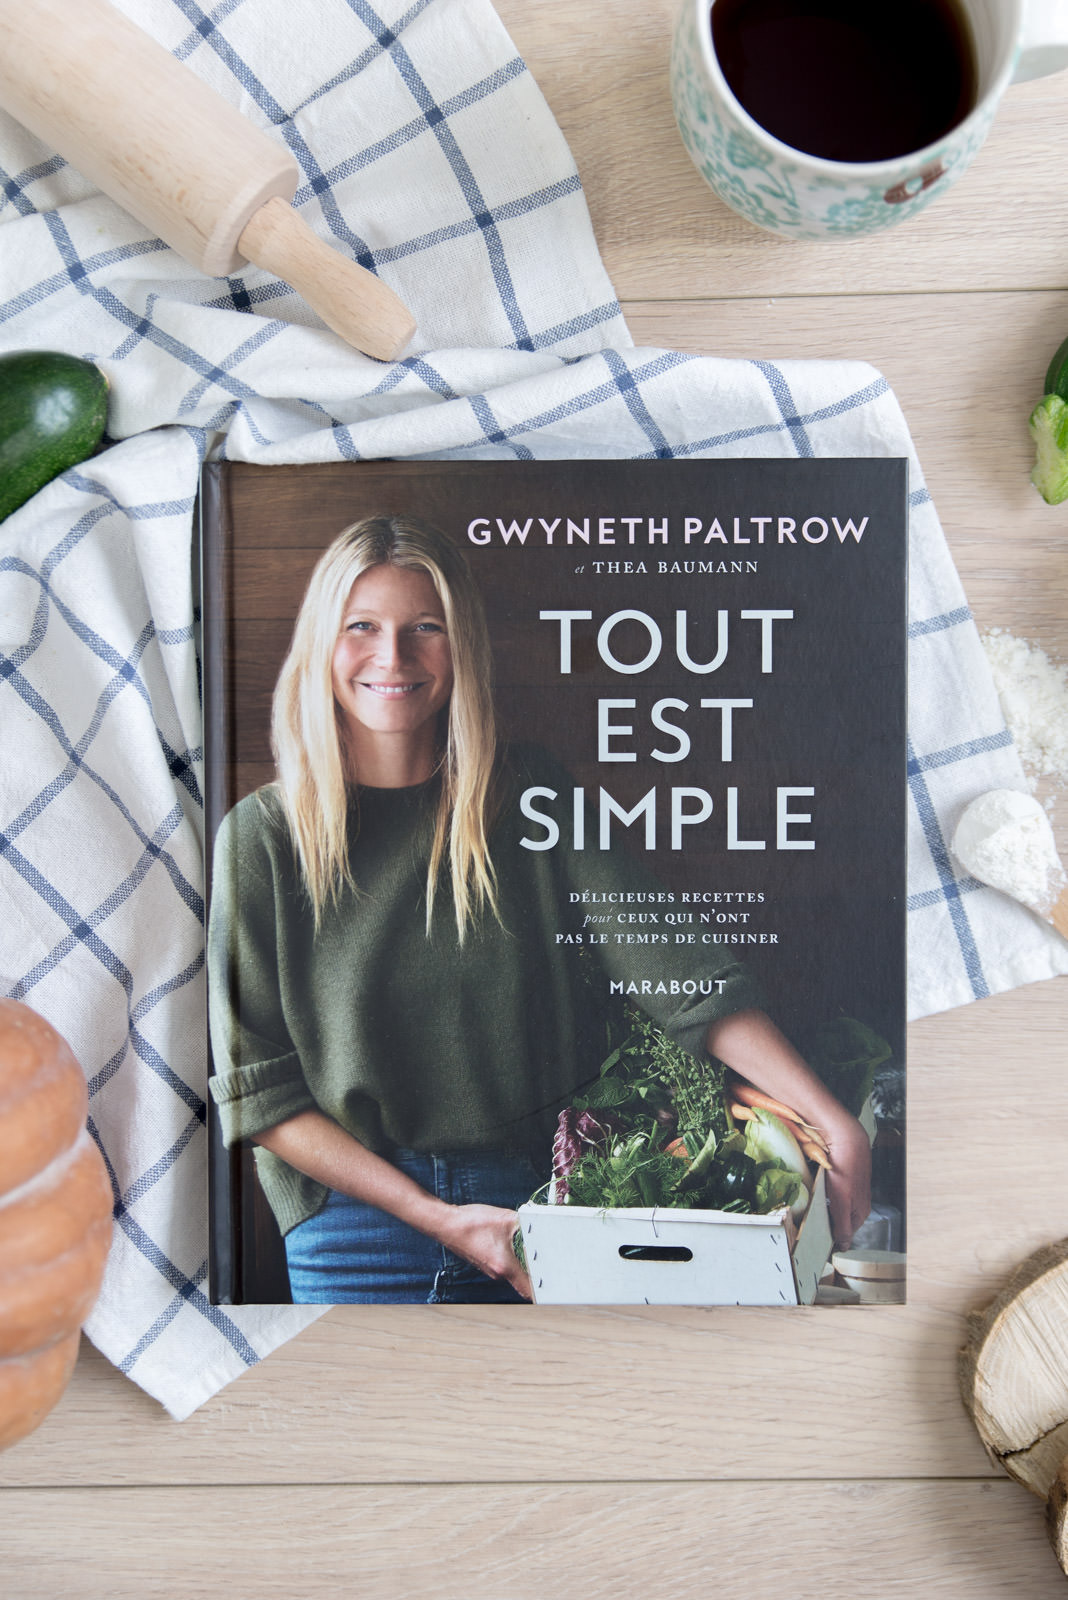 Blog-Mode-And-The-City-Lifestyle-Cinq-Petites-Choses-187-tout-est-simple-gwyneth2